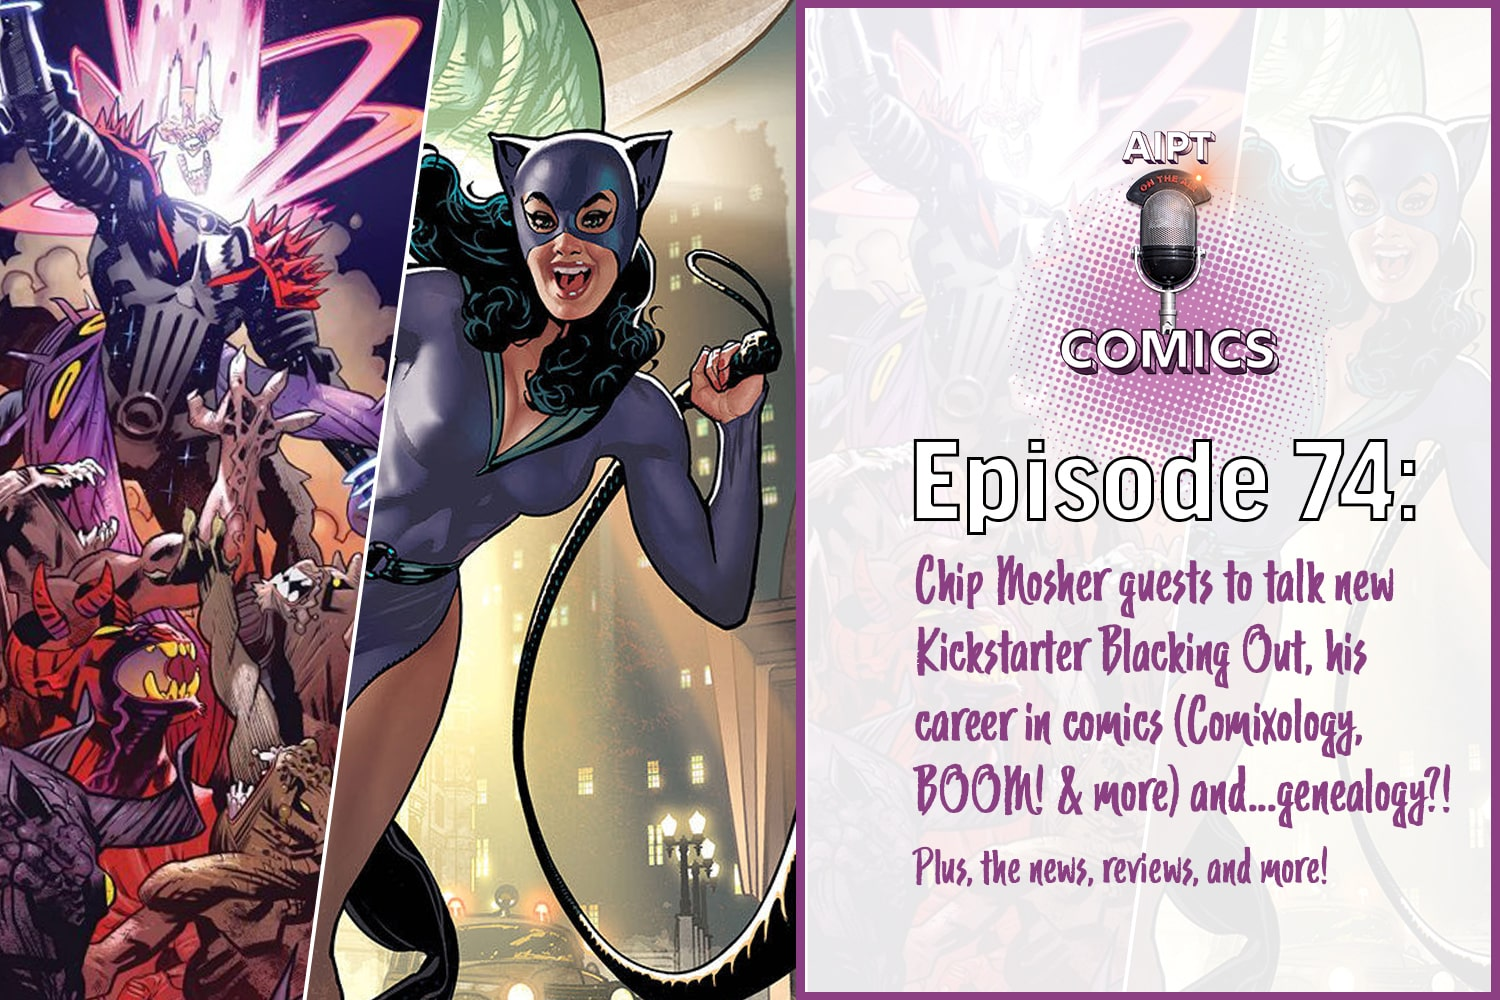 Comics podcast news recap, reviews, and an interview with Comixology Head of Content Chip Mosher.